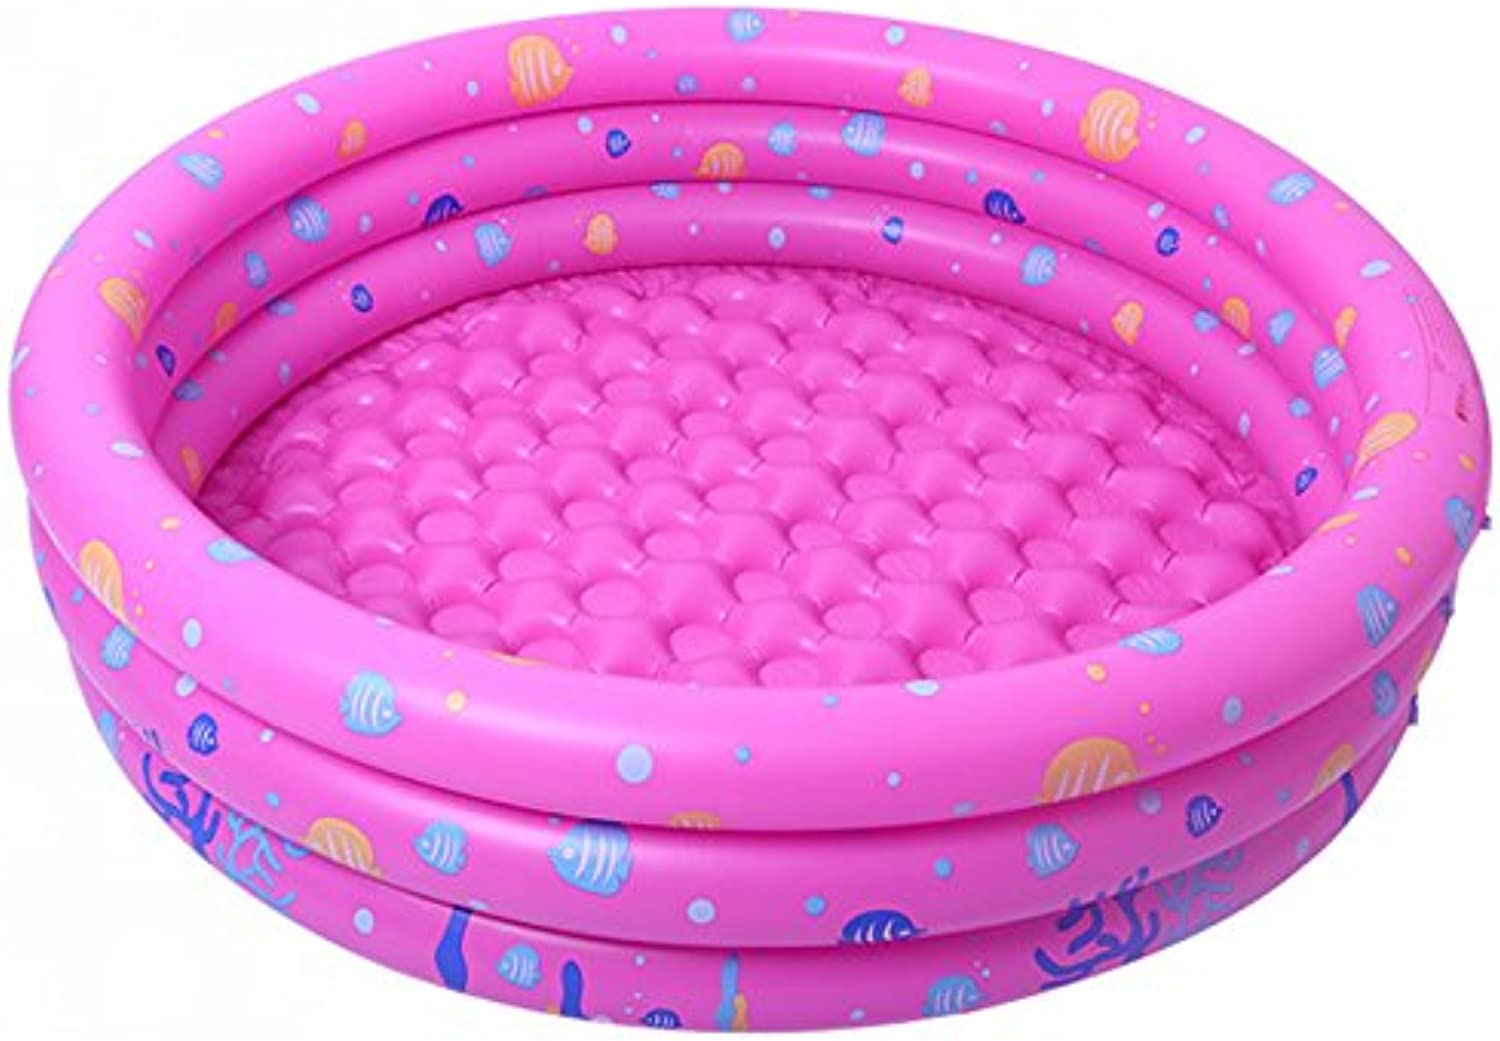 Moonvvin 3 Layer Inflatable Round Swimming Pool Ball Pit Safe PVC for 12 Year Old Babies Toddlers Outdoor Garden Parties (Pink)